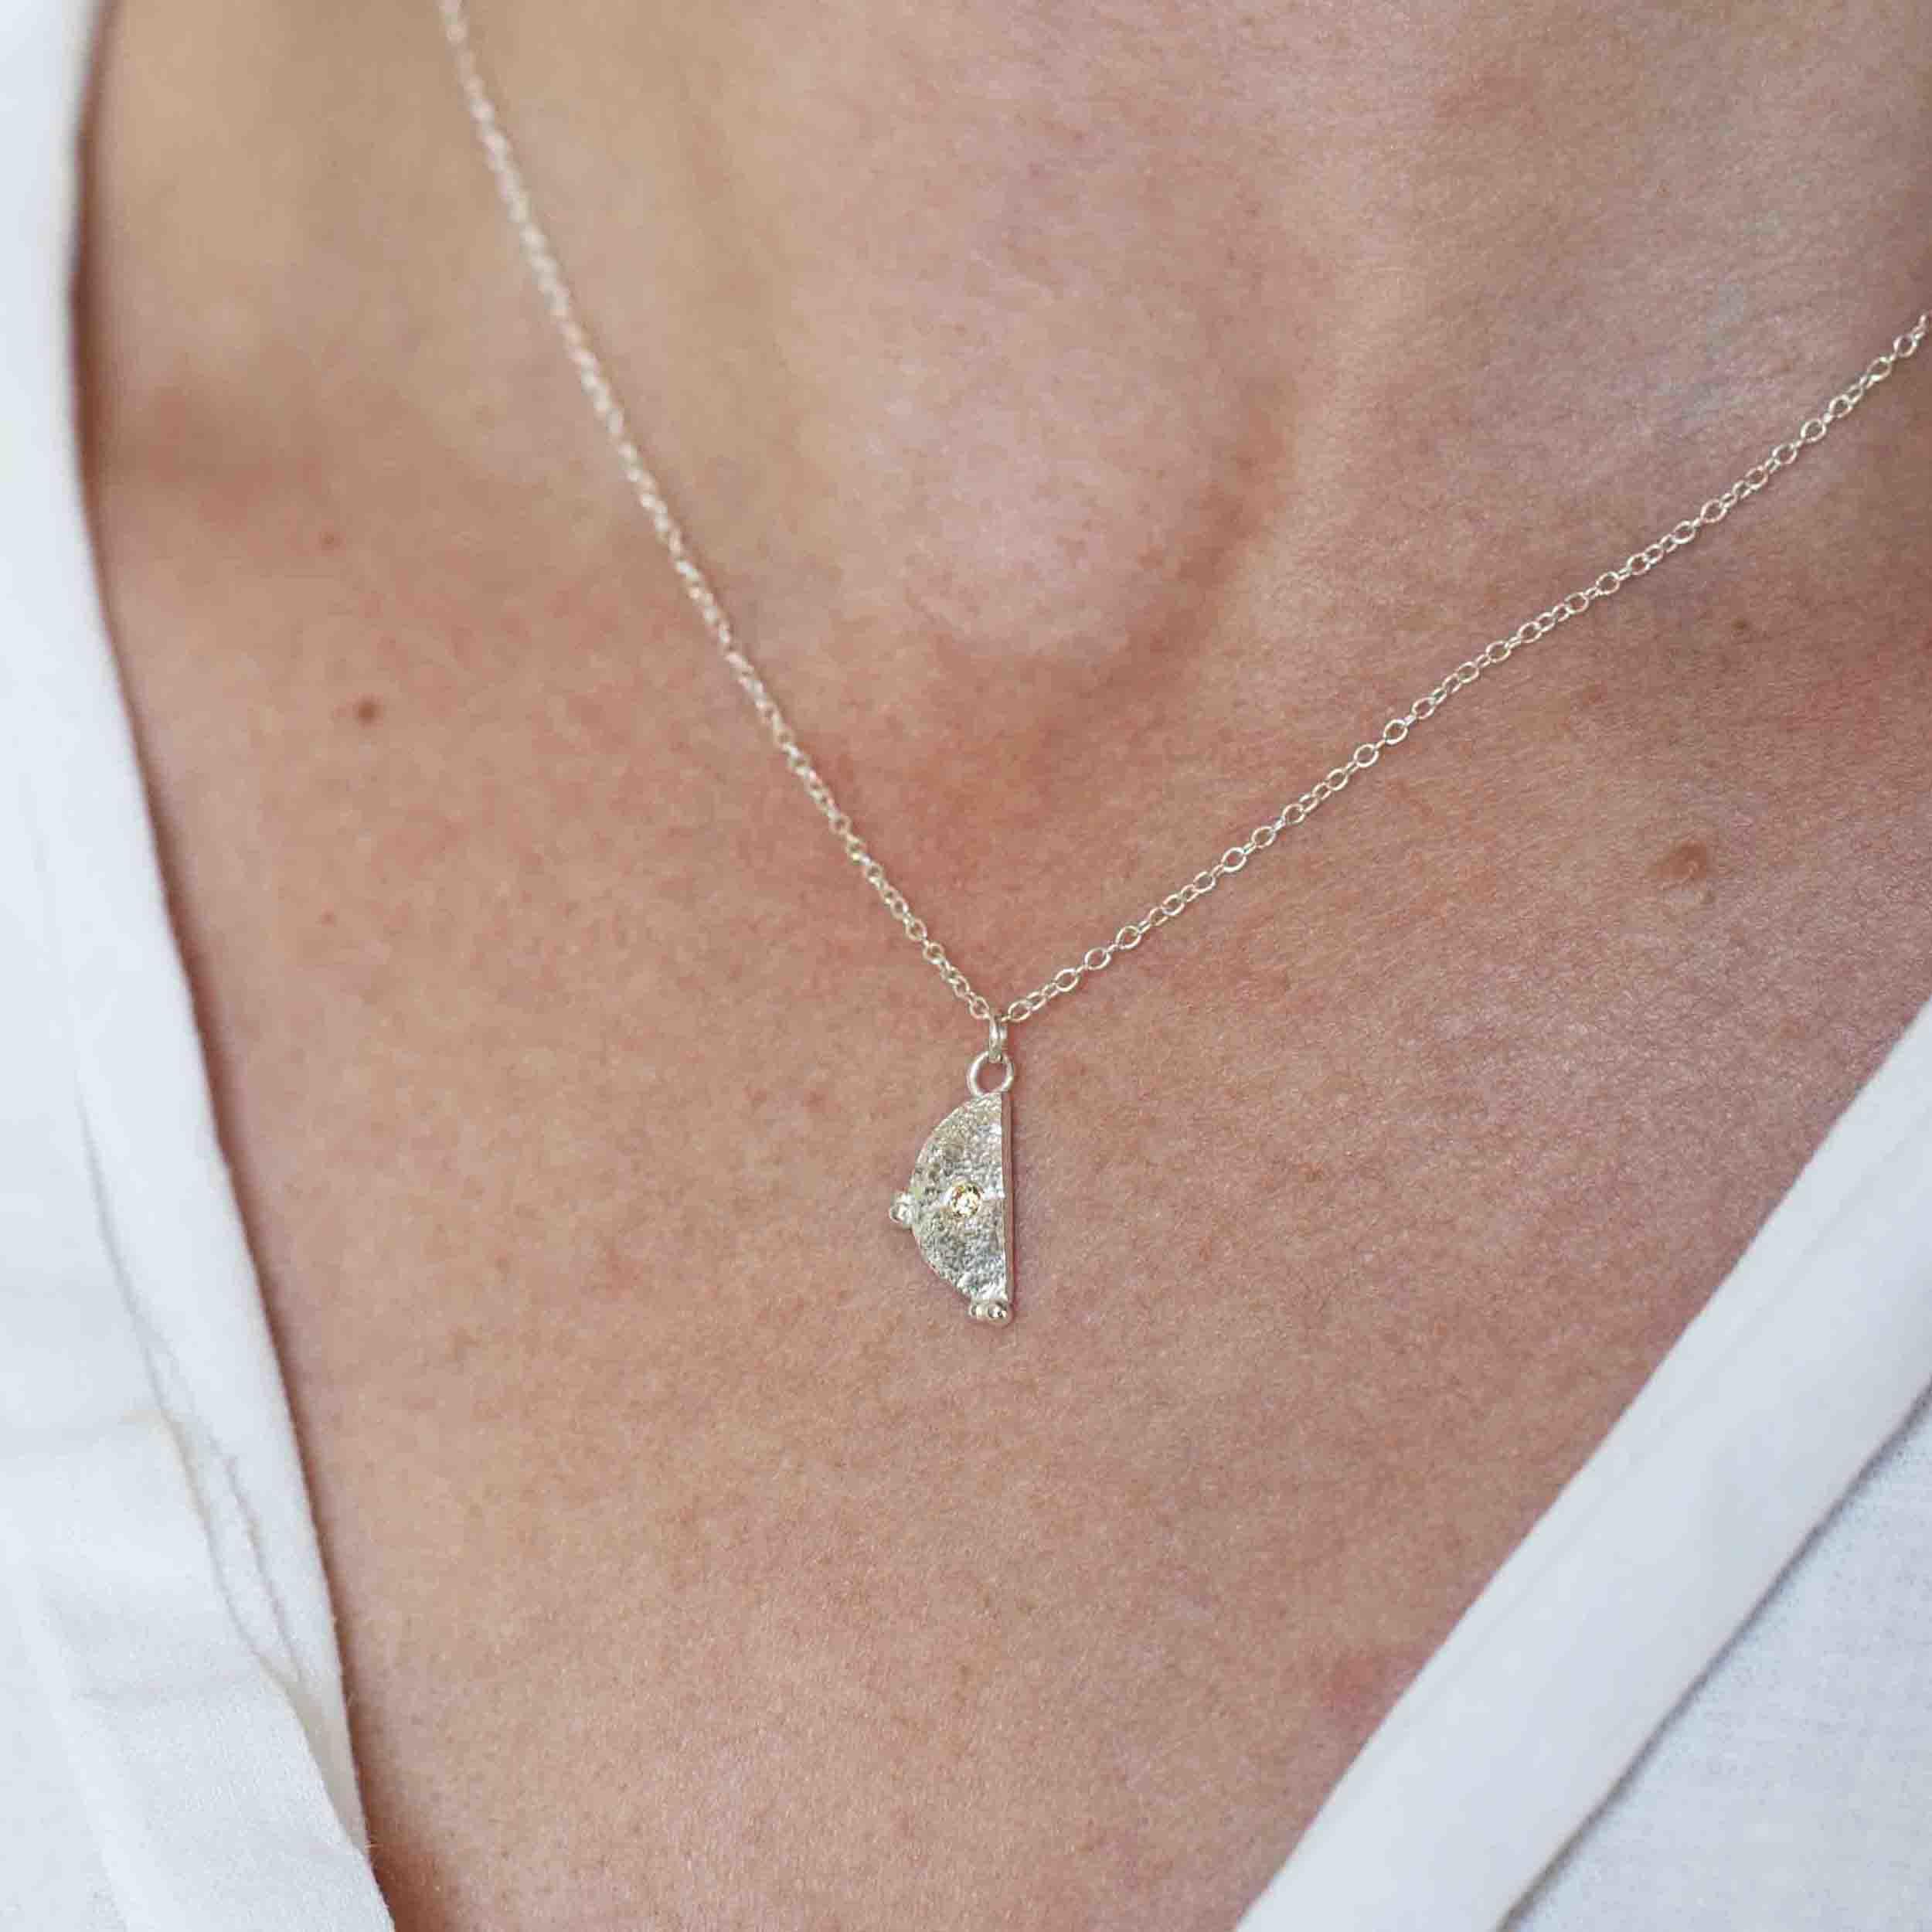 Hënë Moon pendant Champagne CZ - On